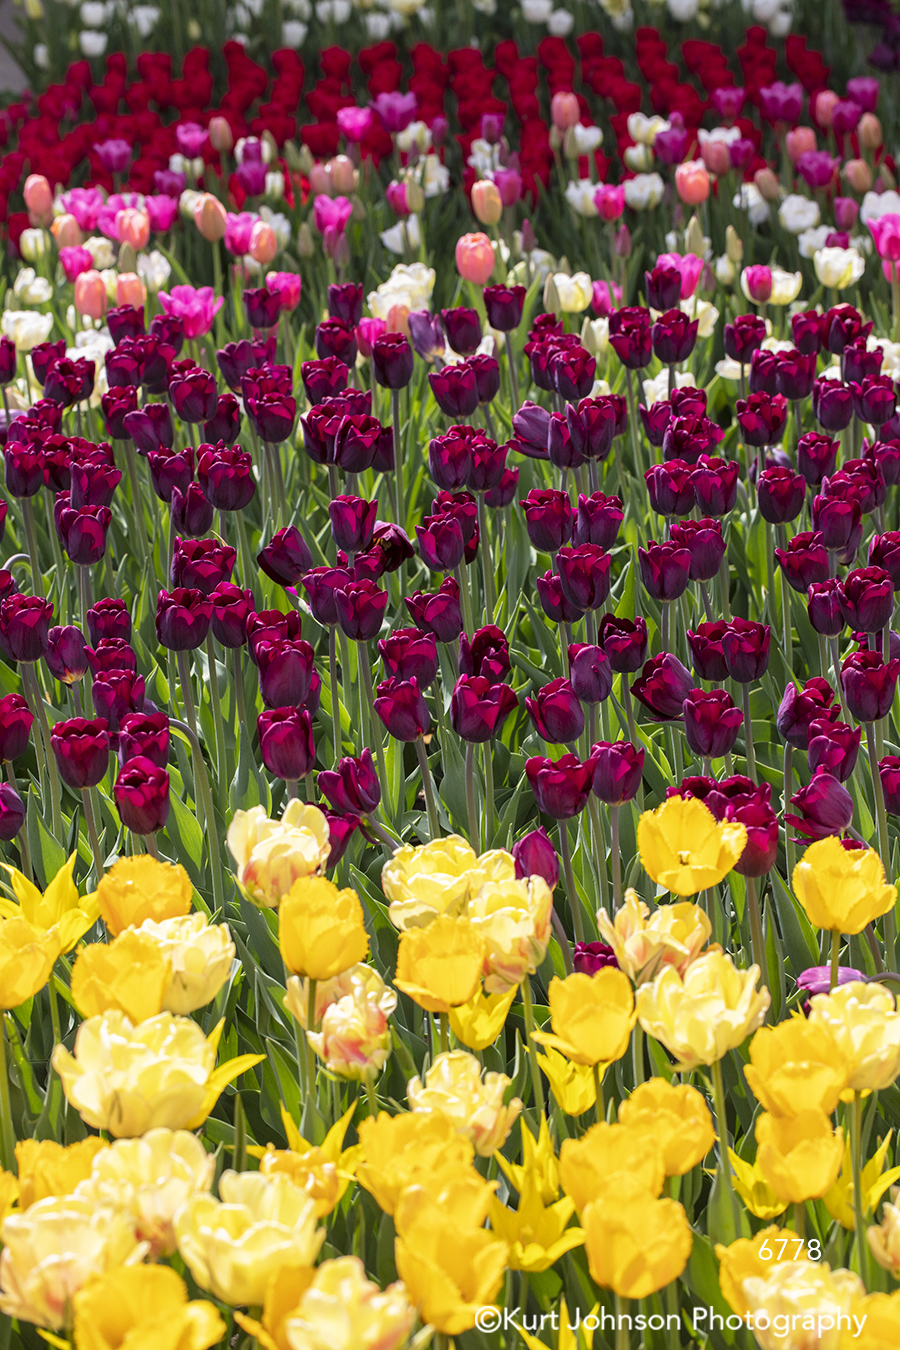 yellow purple red pink tulip tulips field spring flowers flower green grass leaves bright happy colorful